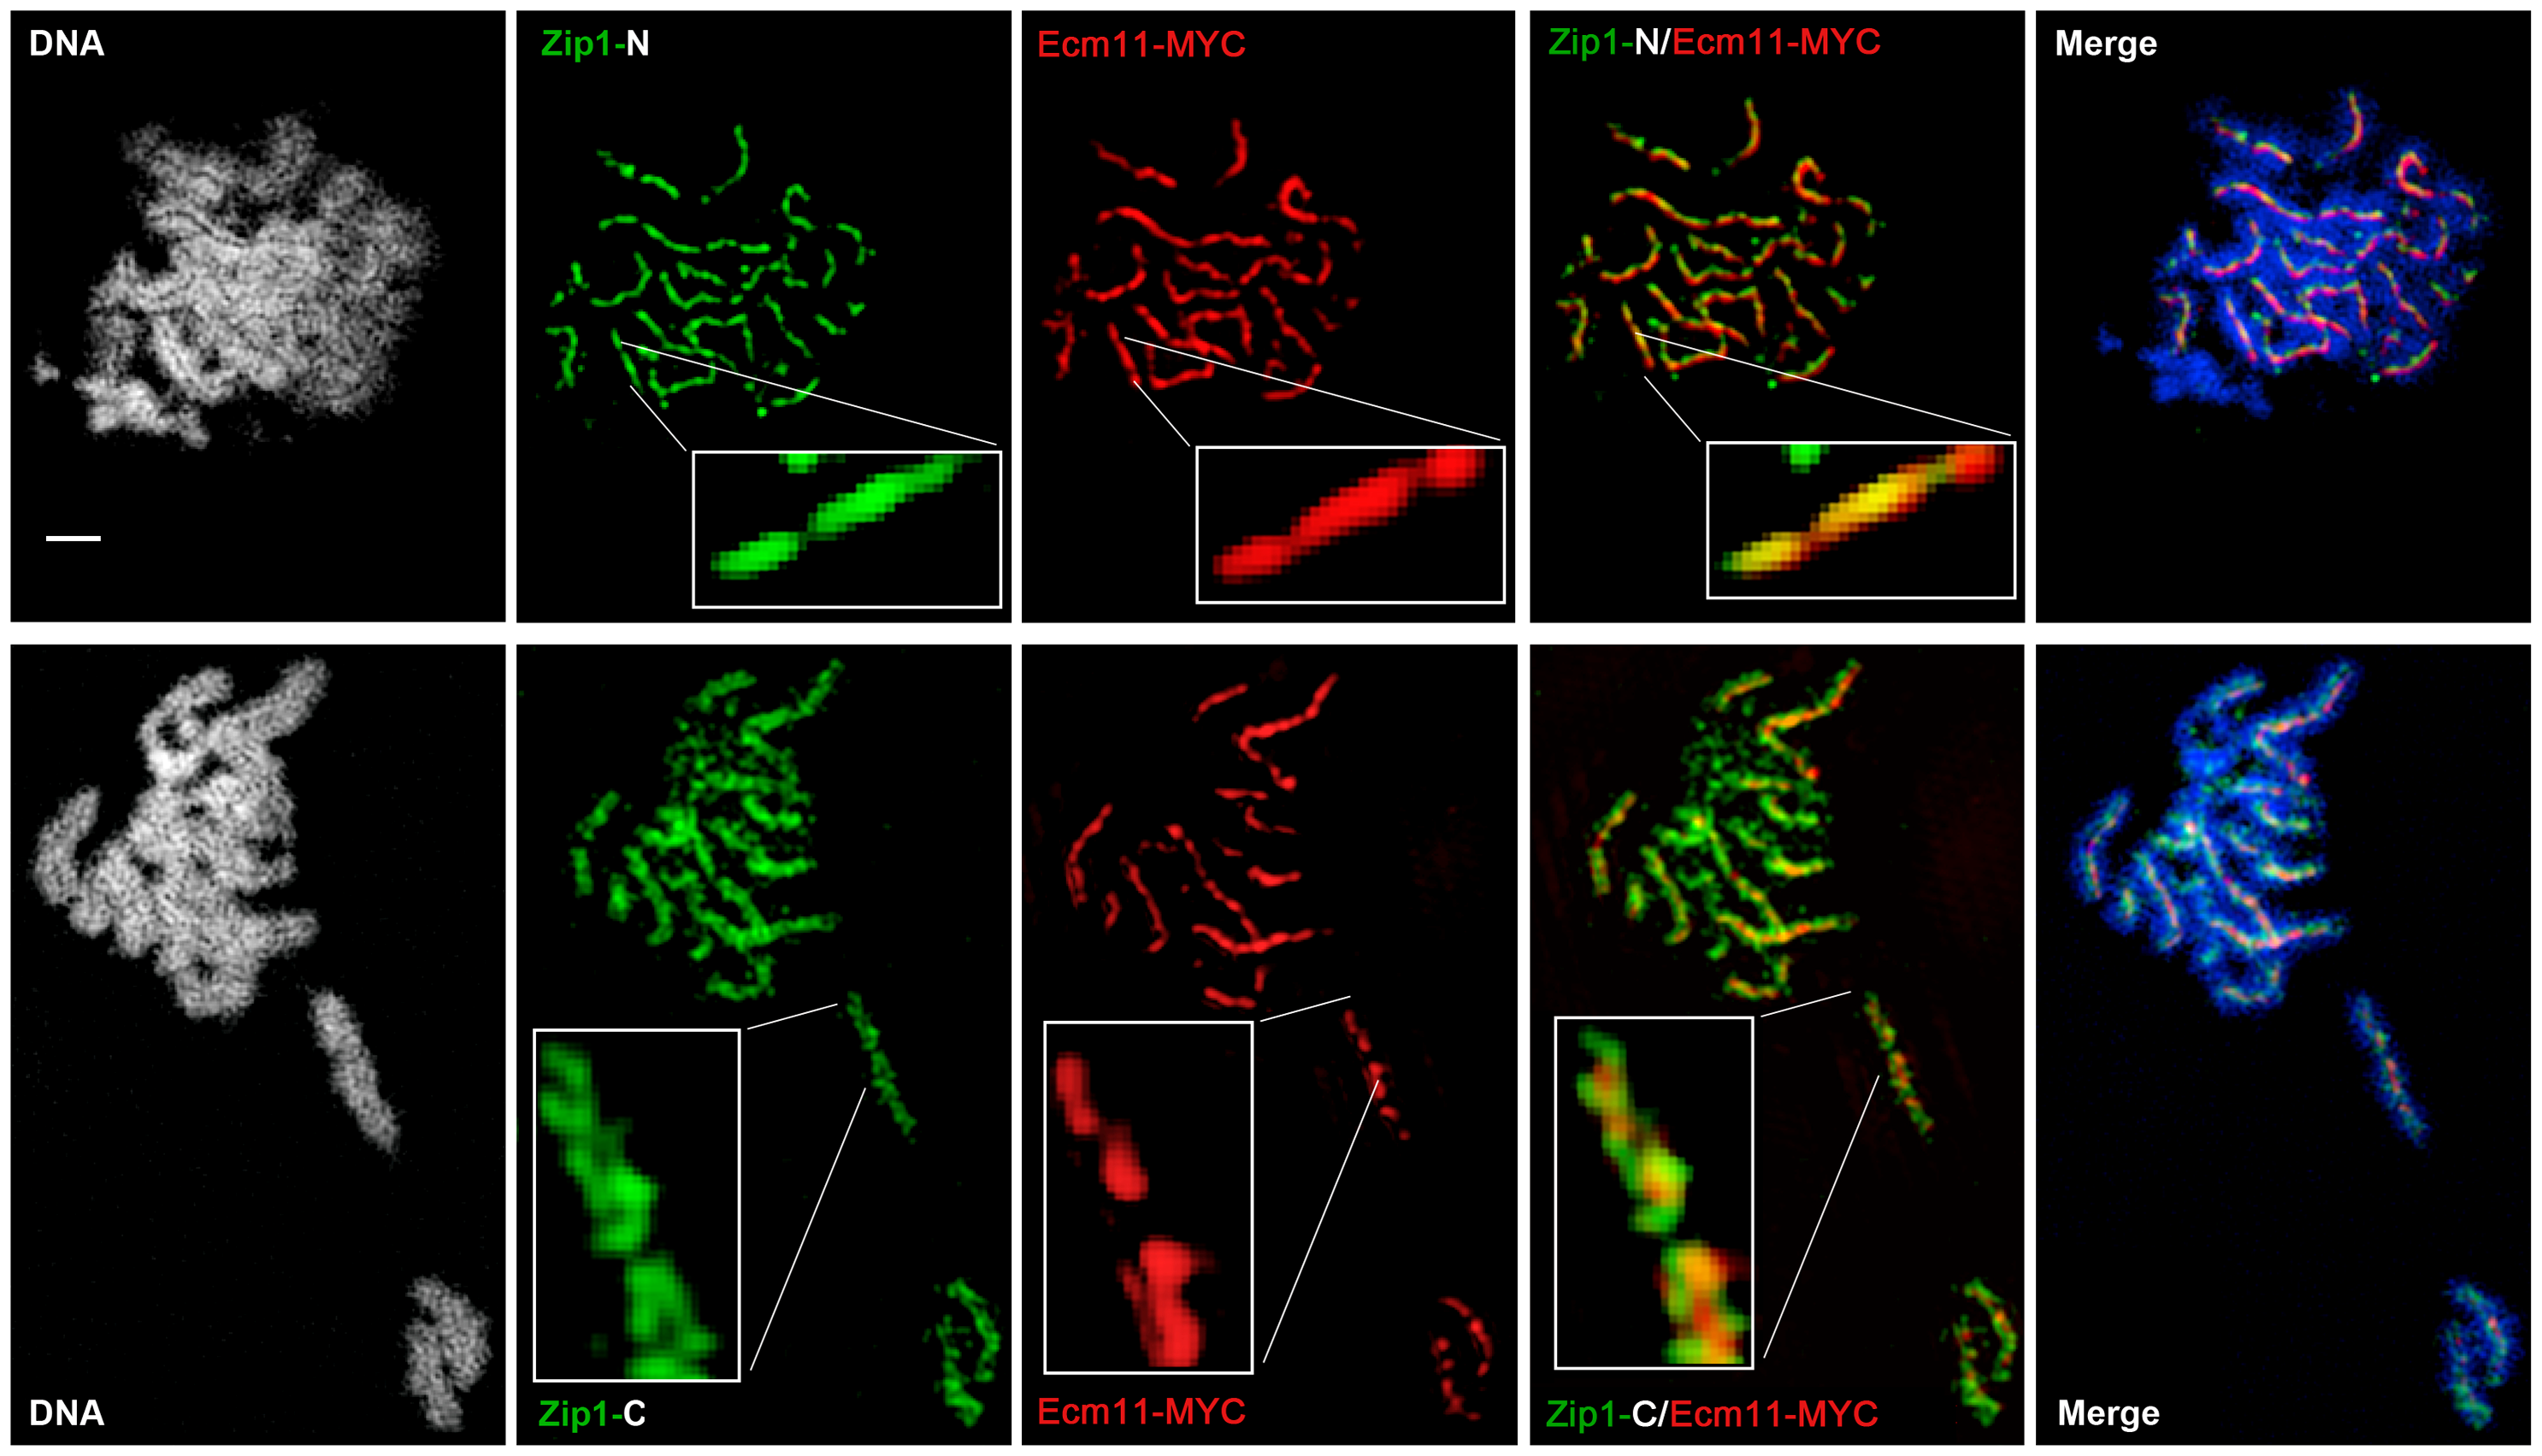 Ecm11-MYC is positioned at the central element of the budding yeast SC.